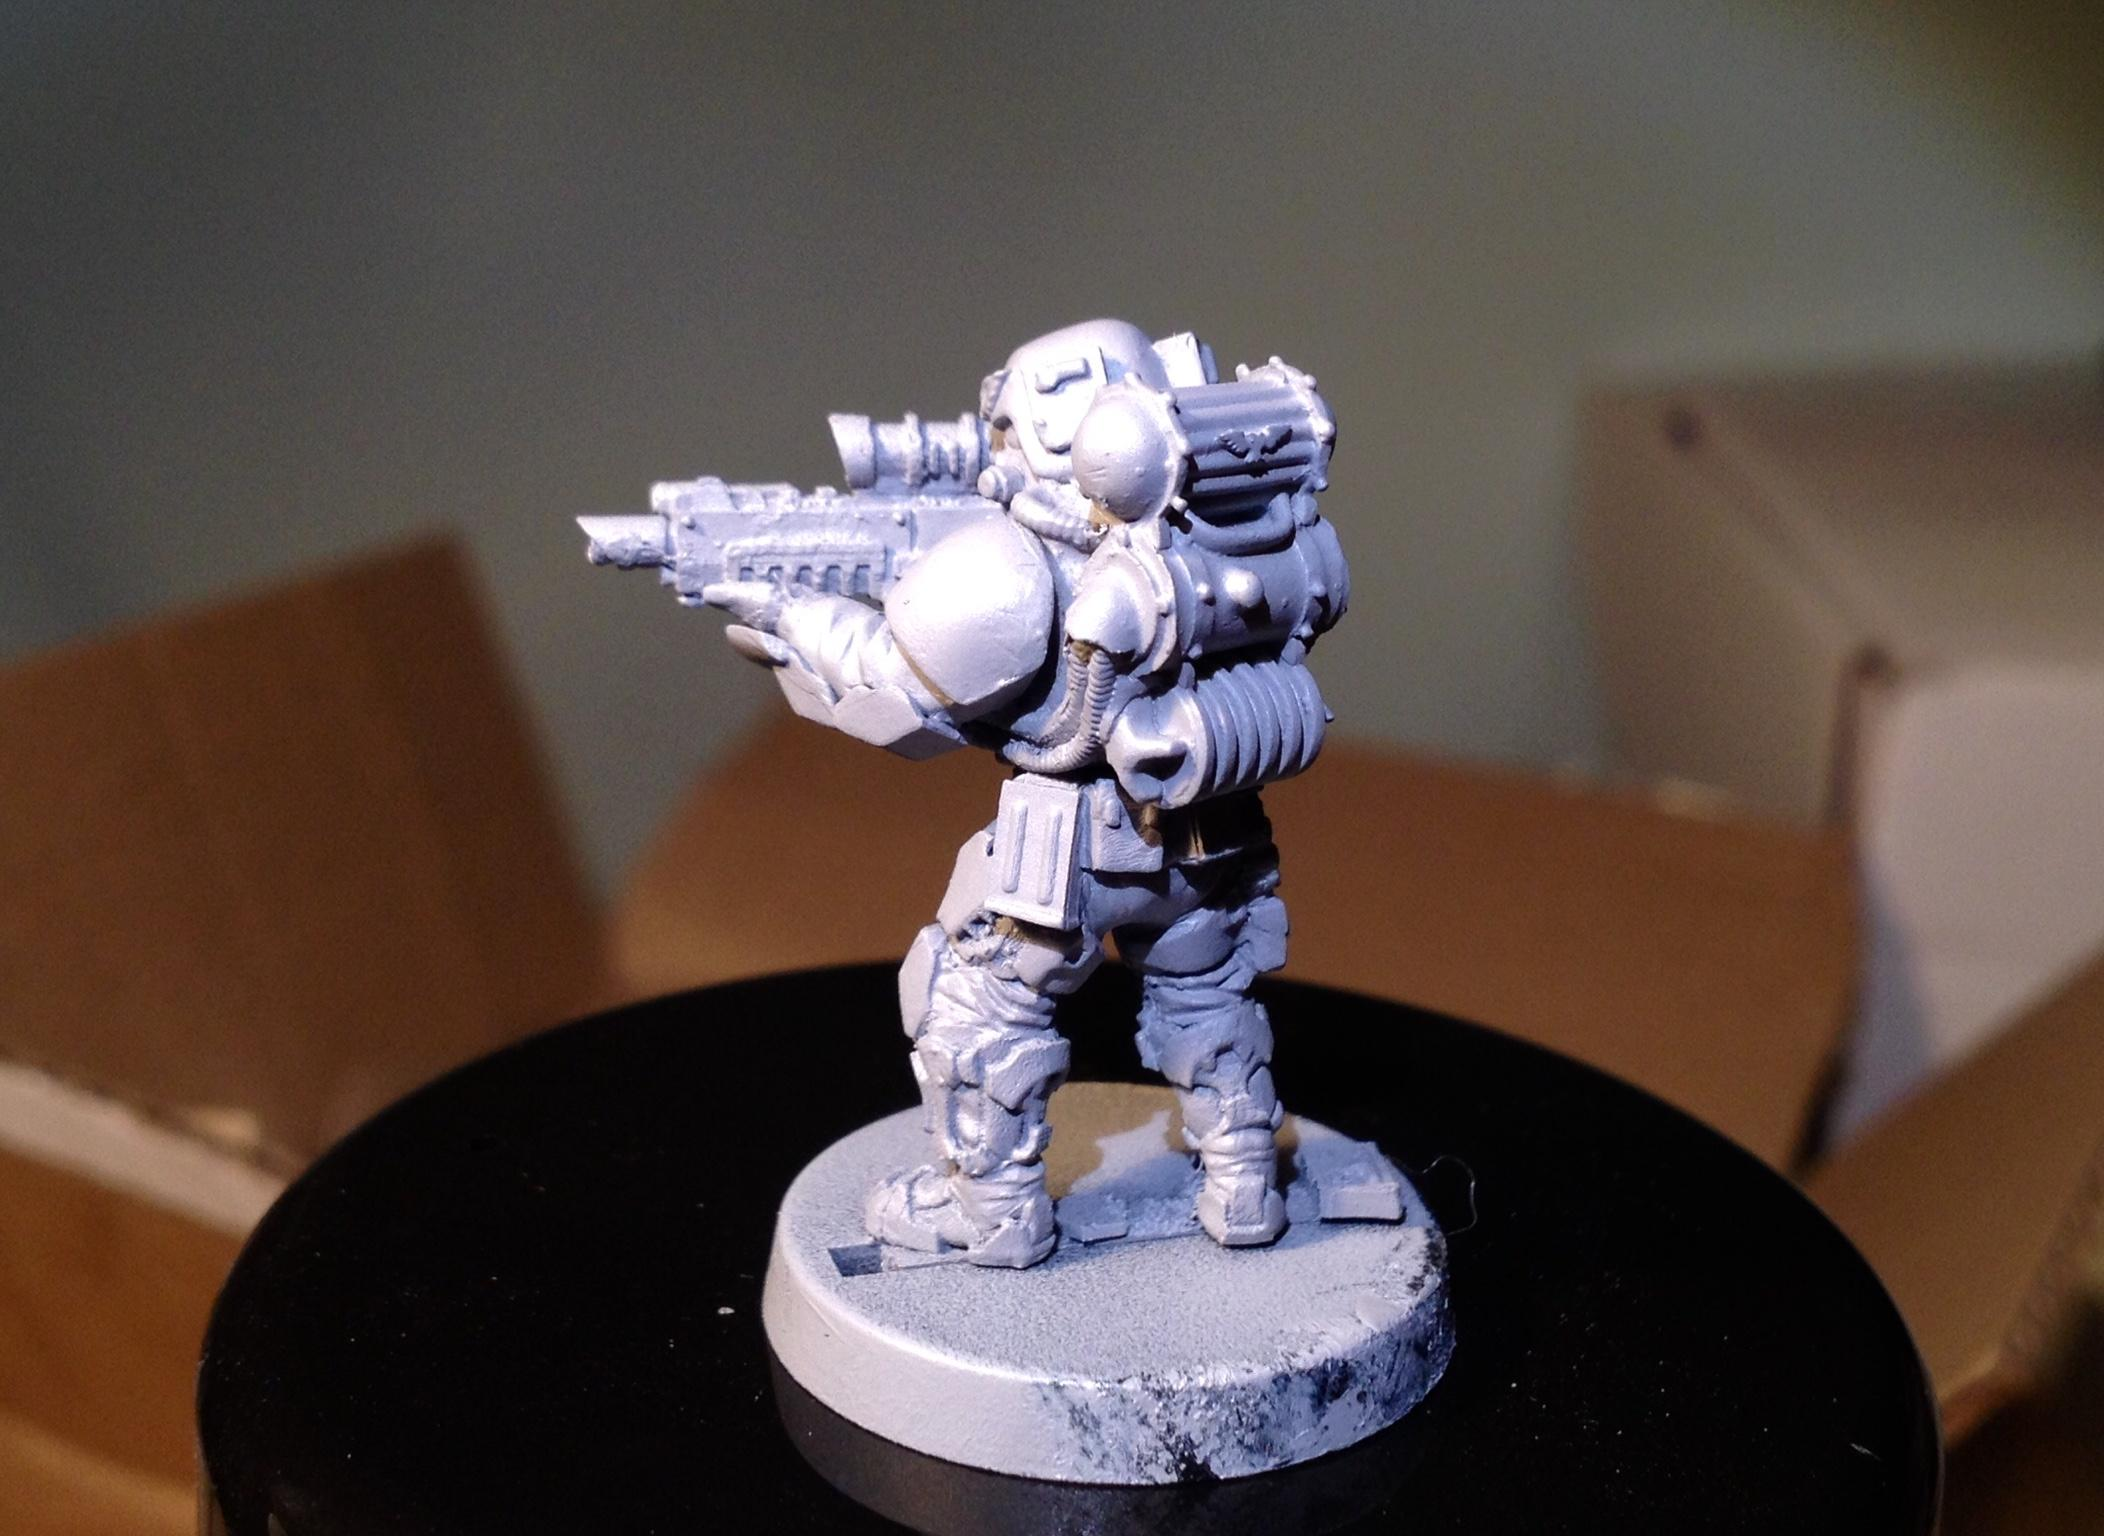 Anvil Industry, Astra Militarum, Cadians, Commando, Conversion, Forge World, Imperial Guard, Spec Ops, Special Operations, Storm Troopers, Veteran, Warhammer 40,000